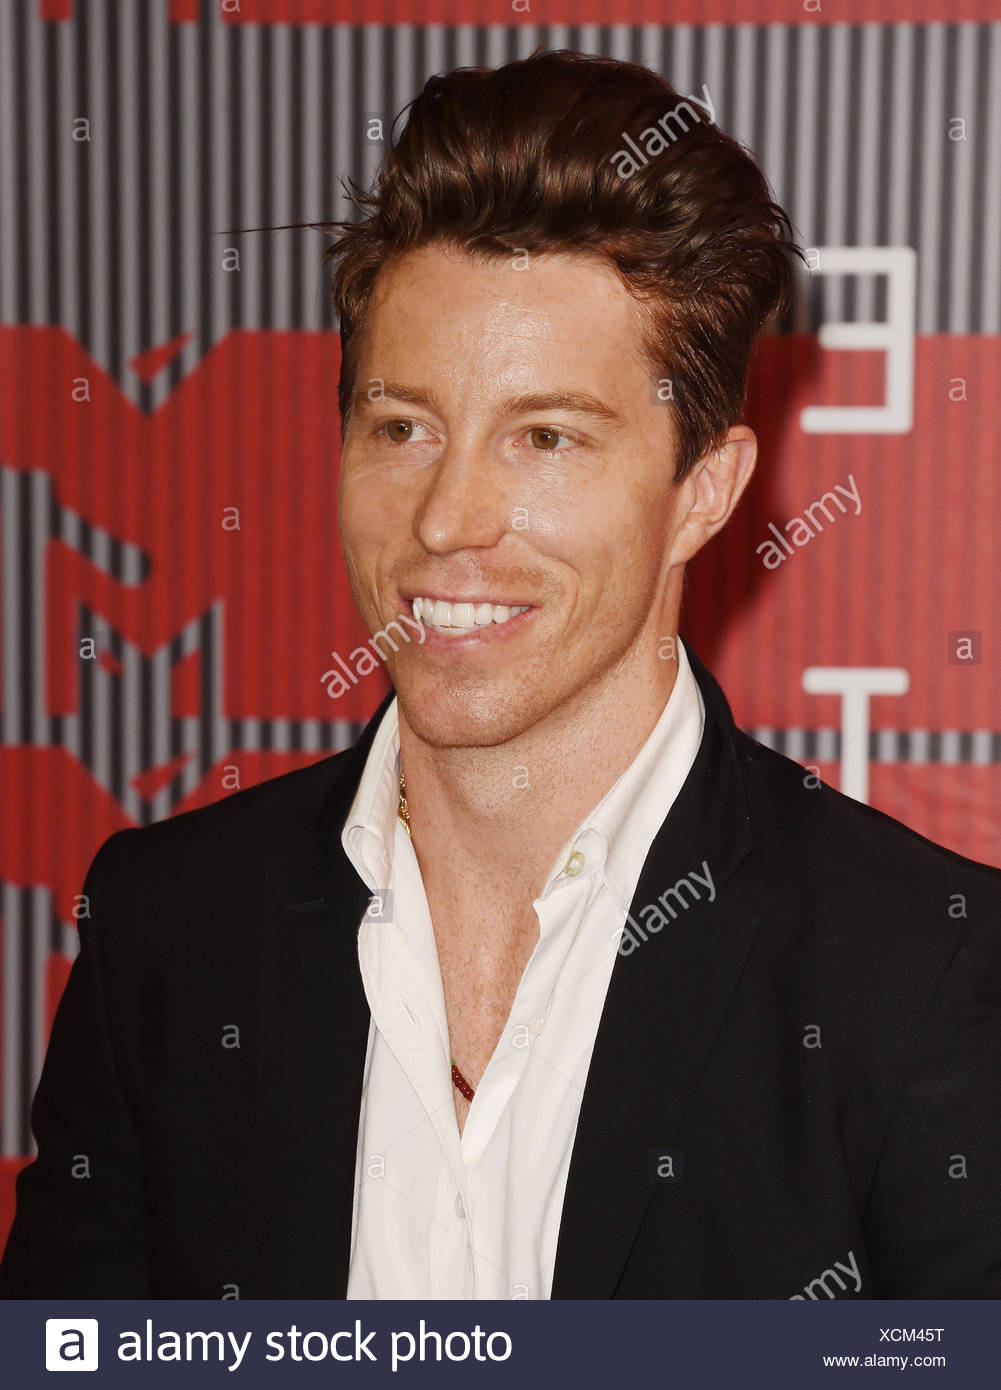 Professional snowboarder Shaun White arrives at the 2015 MTV Video Music Awards at Microsoft Theater on August 30, 2015 in Los Angeles, California., Additional-Rights-Clearances-NA - Stock Image